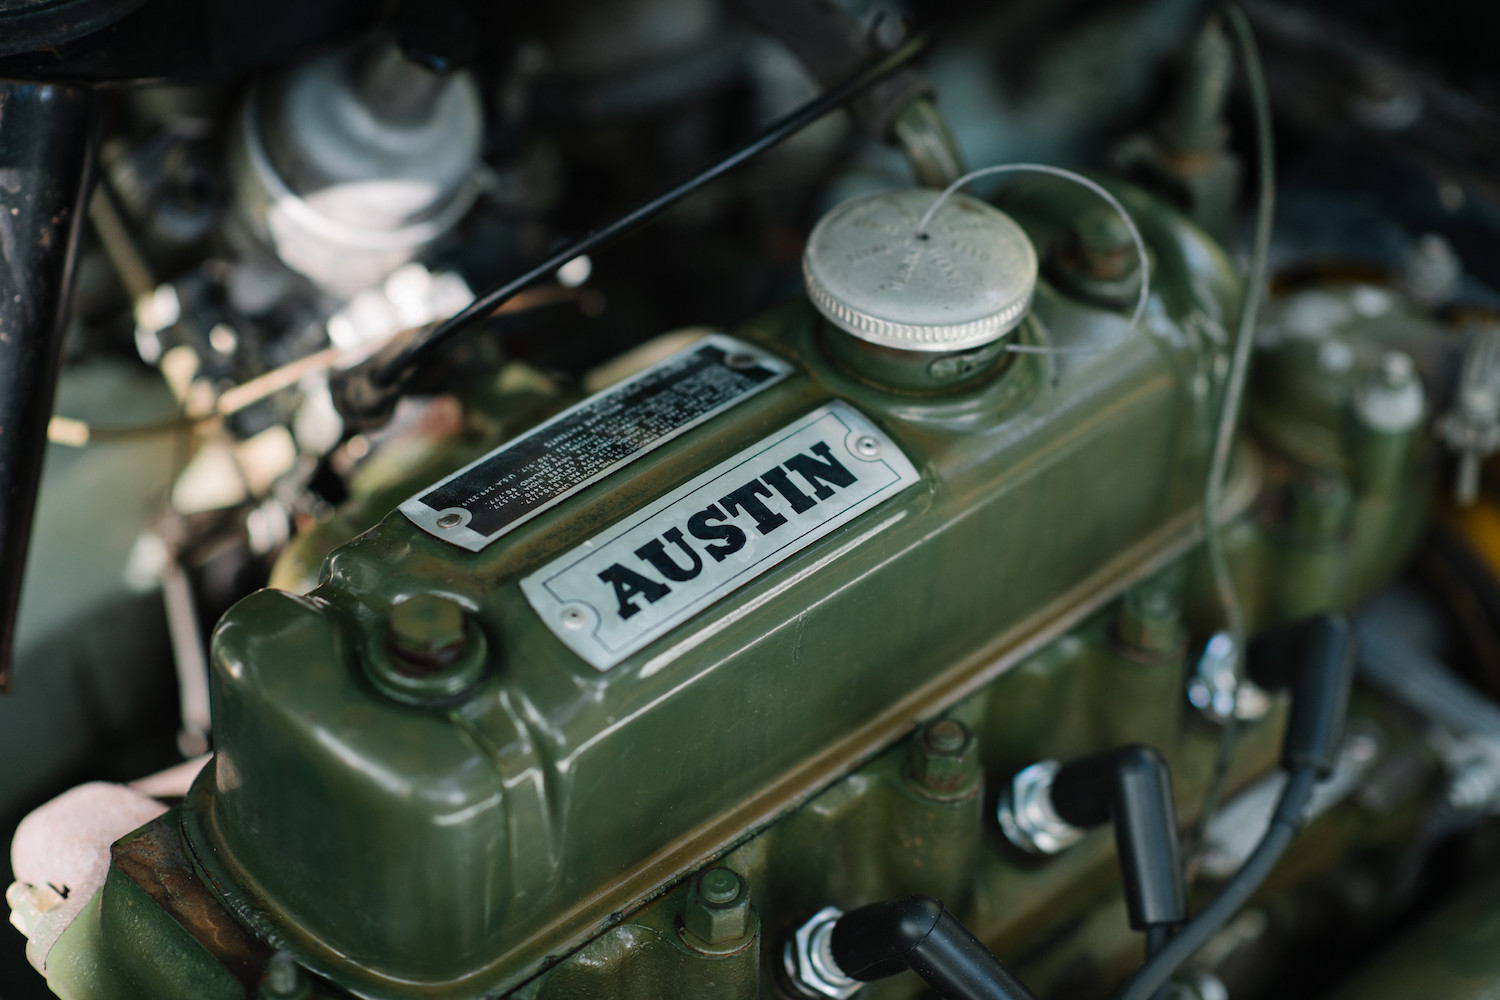 1962 Austin Mini Beach Car engine